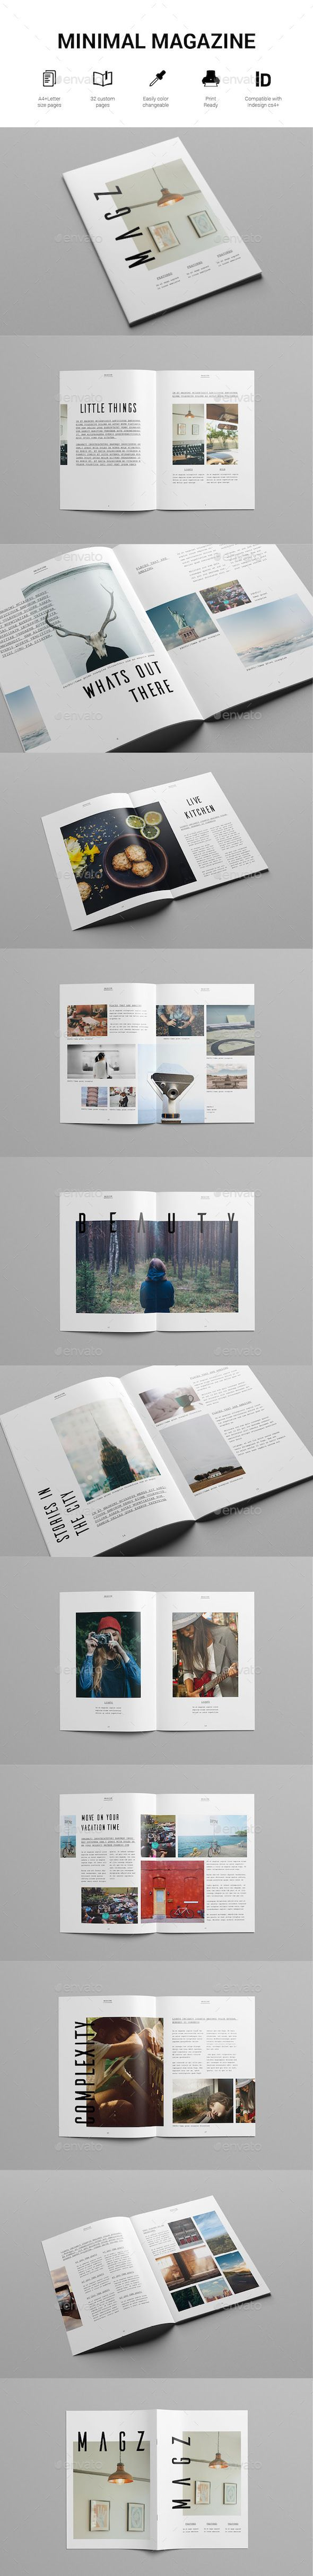 Minimal Lifestyle Magazine Template #8.27x11.69 #a4 #clean #modern #cs4 #indesign